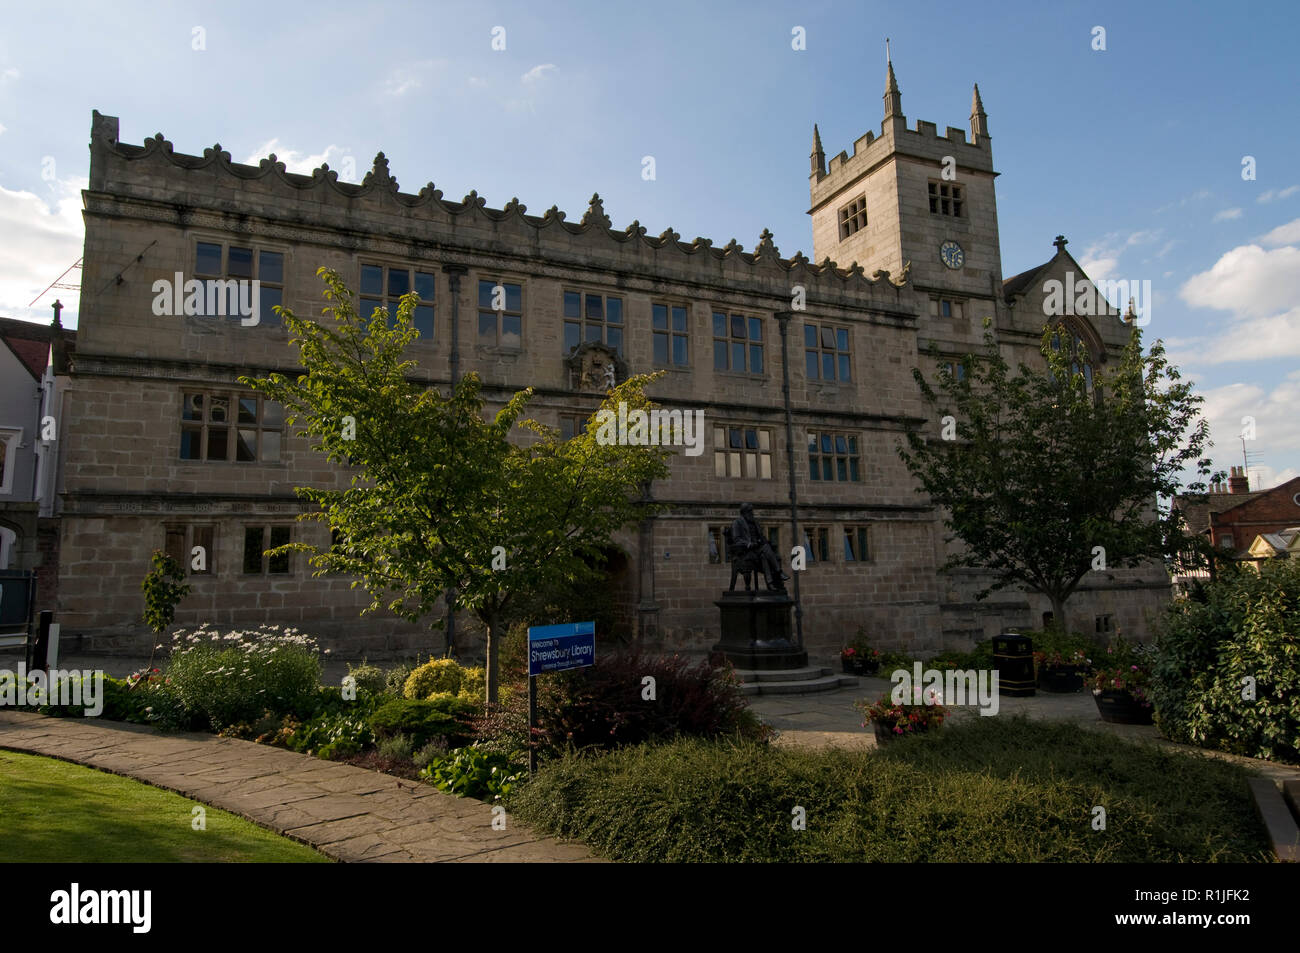 The Castle Gates Library in Shrewsbury, Shropshire, Britain.   Sir Philip Sidney, Judge Jeffreys and Charles Darwin were educated here when it was a s - Stock Image